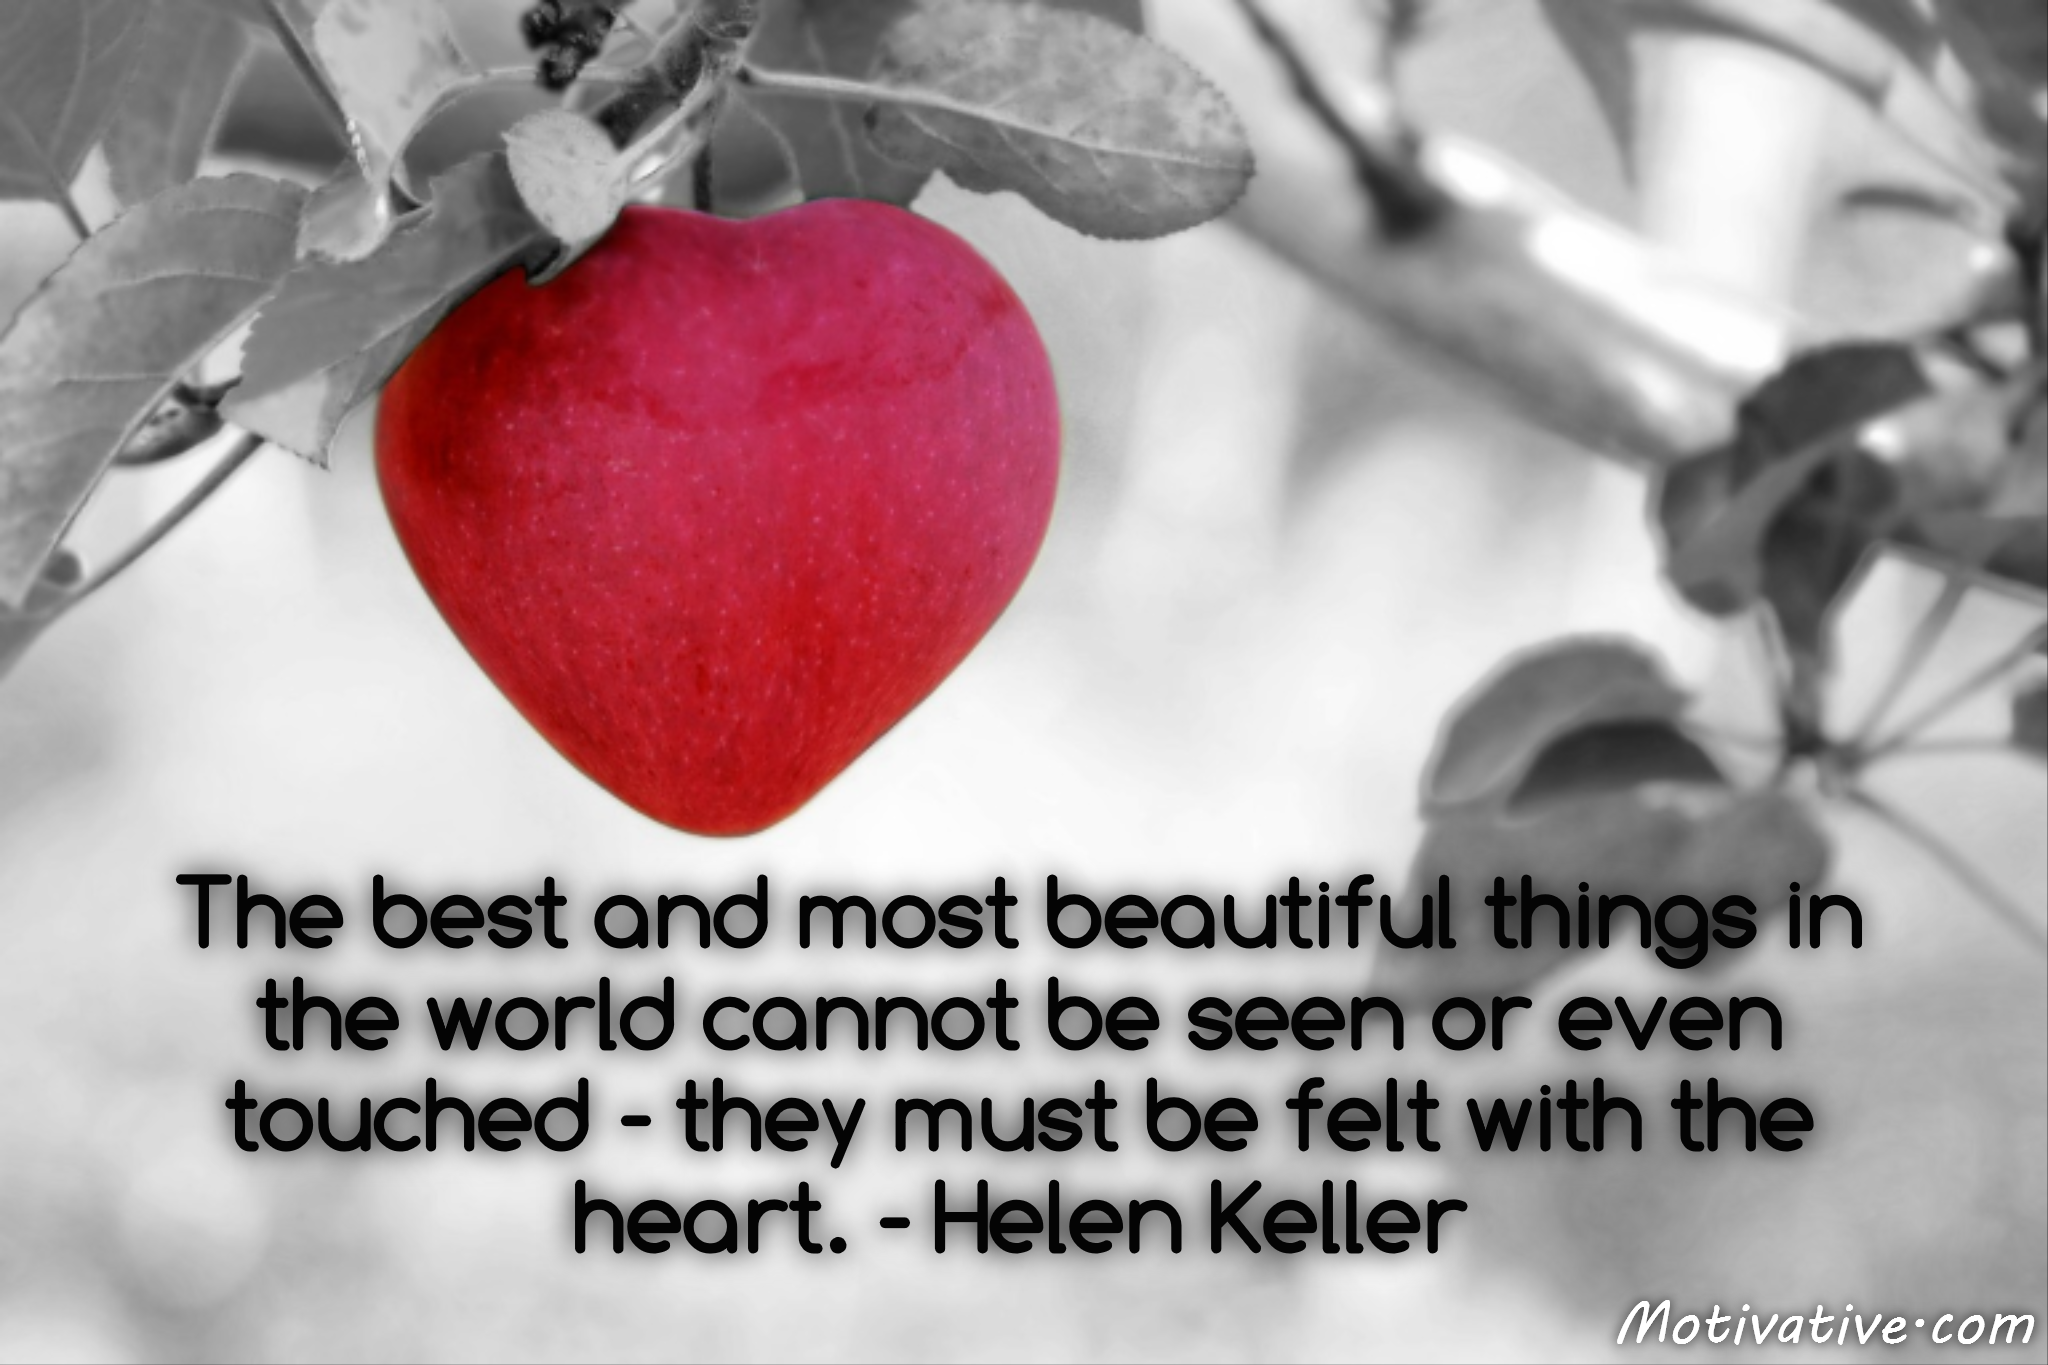 The best and most beautiful things in the world cannot be seen or even touched – they must be felt with the heart. – Helen Keller